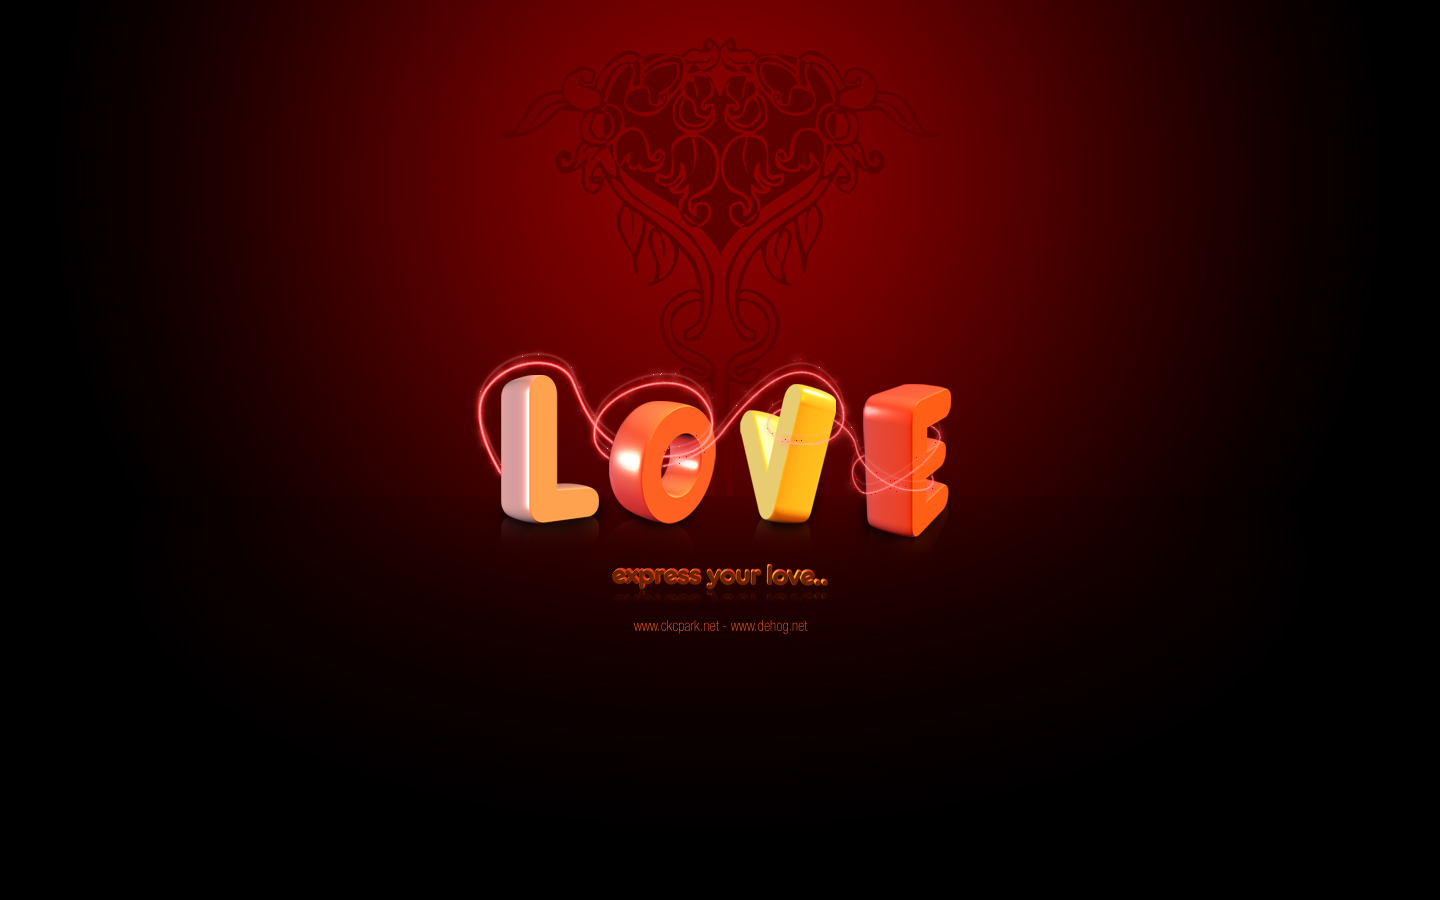 Love High Definition Wallpaper - Wallpaper, High Definition, High Quality, Widescreen